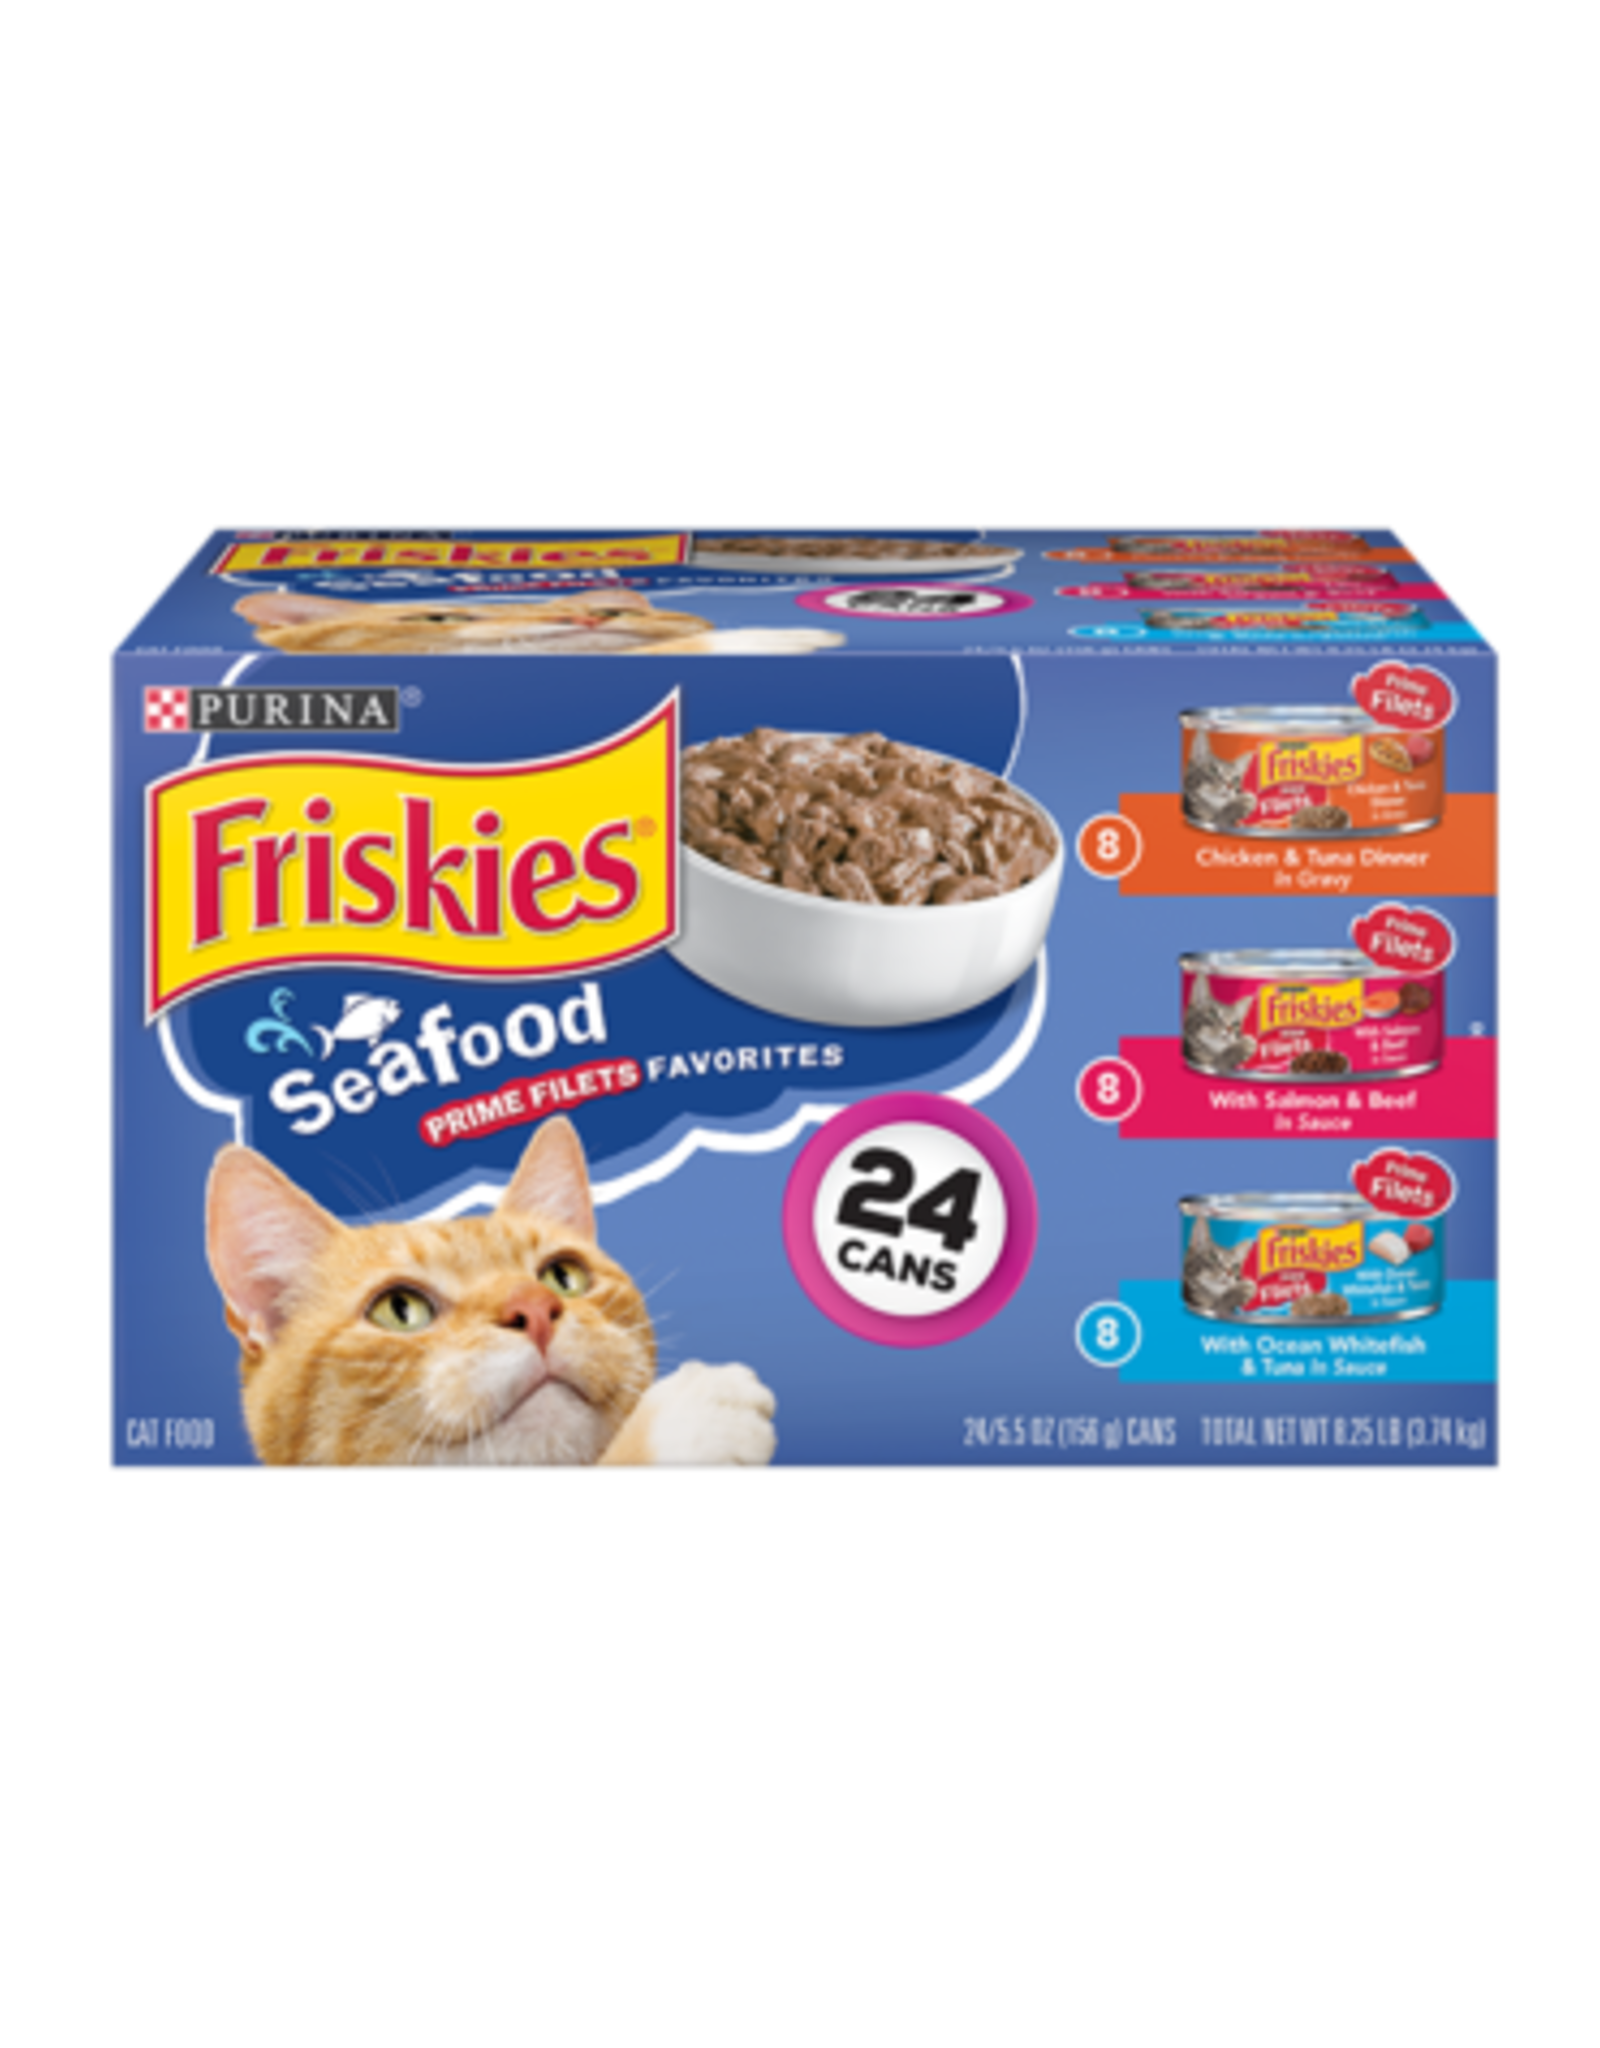 FRISKIES CAT PRIME FILETS SEAFOOD FAVORITES 5.5 OZ CAN VARIETY PACK